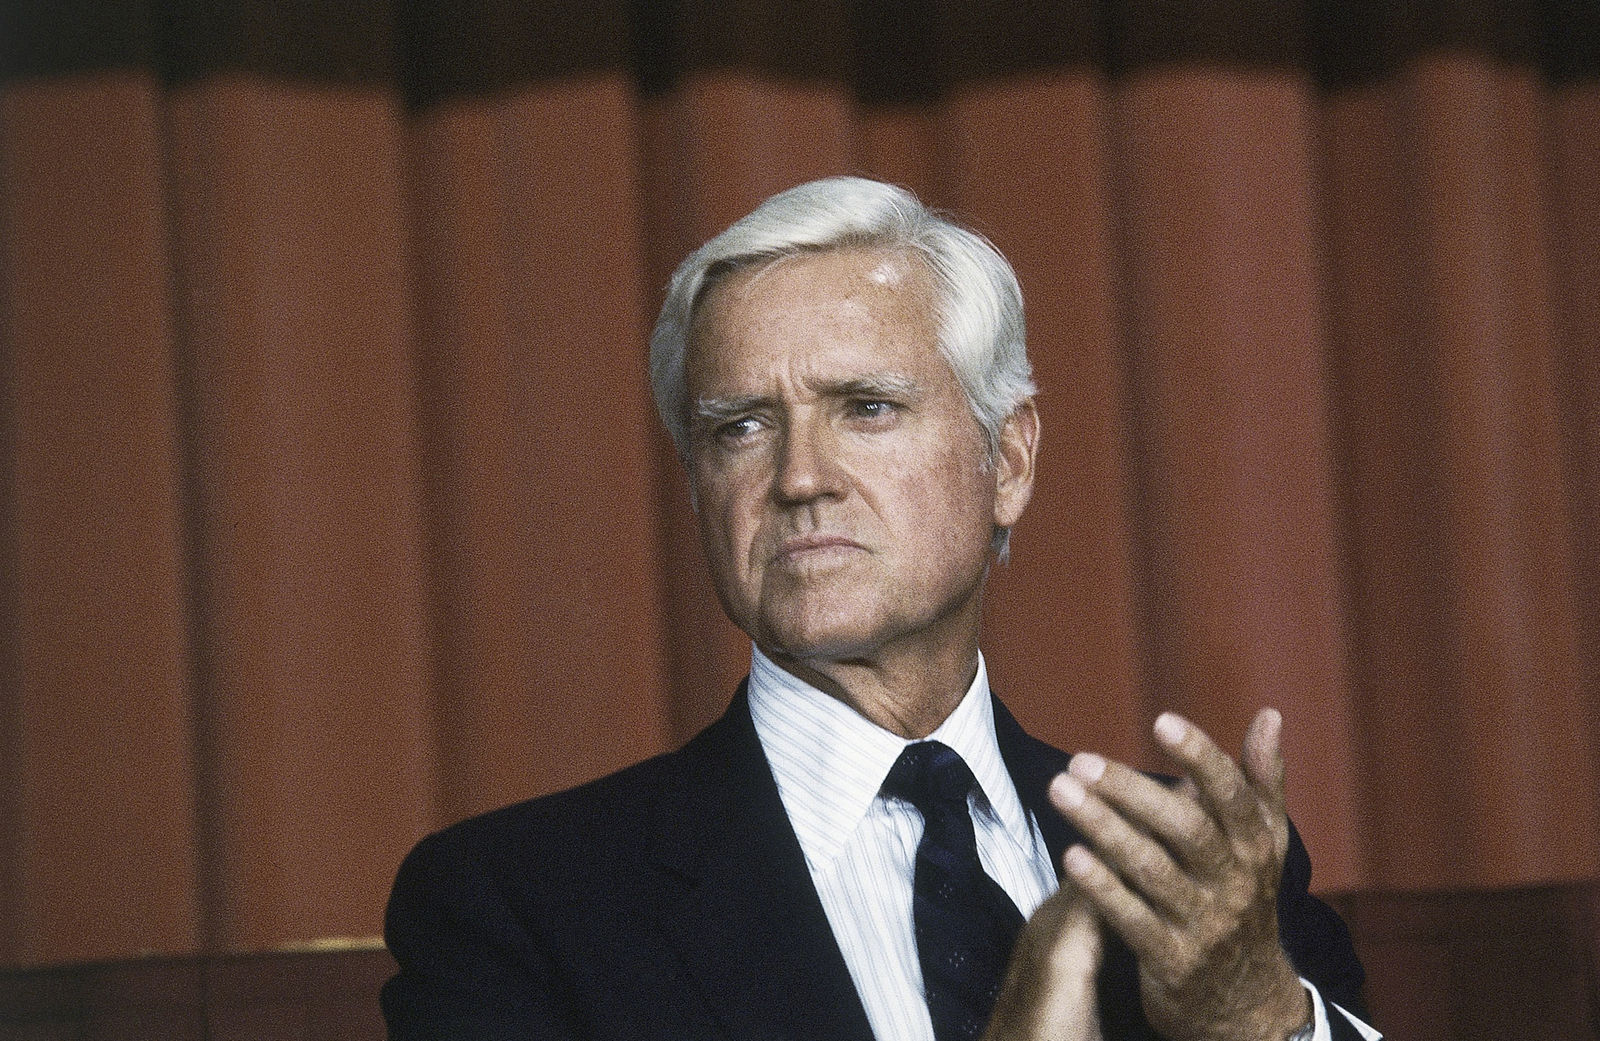 FILE - This July 20, 1983 file photo shows Senator Ernest F. Hollings (D-S.C.) in Washingrton D. C. Hollings, a moderate six-term Democrat who made an unsuccessful bid for the presidency in 1984, has died. (AP Photo, File)